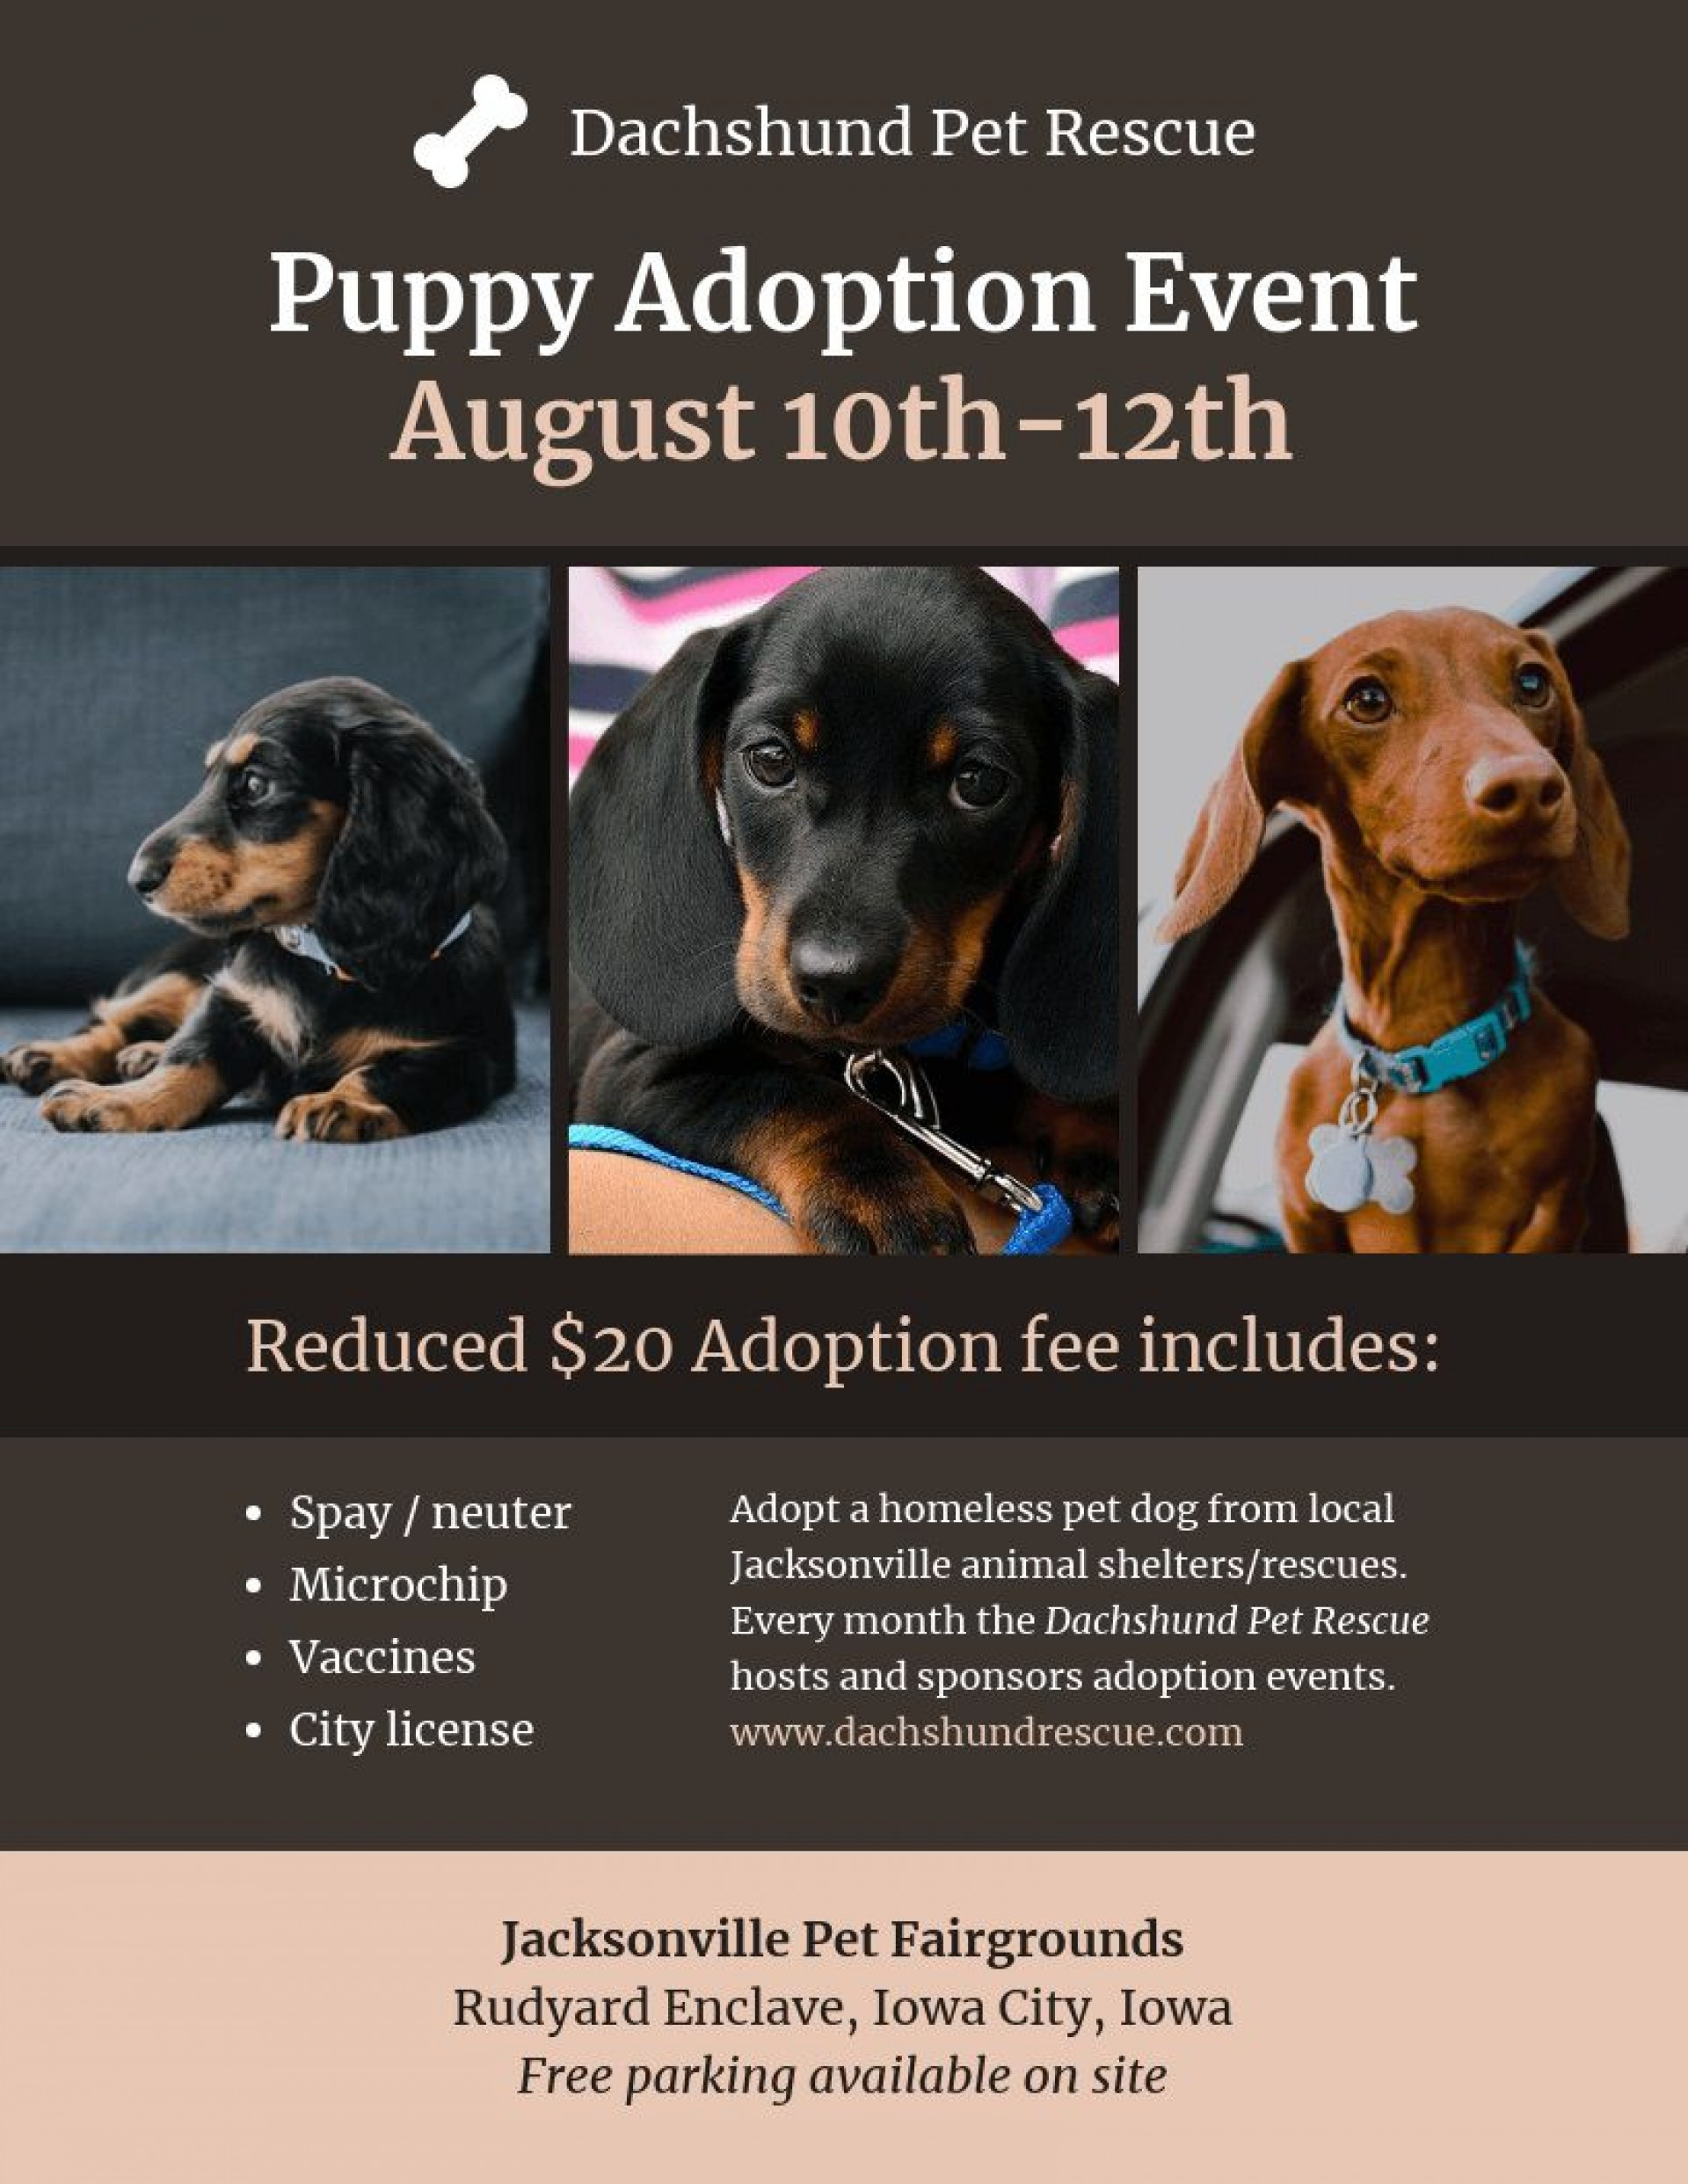 001 Awesome Pet Adoption Flyer Template Concept  Free Event Dog1920